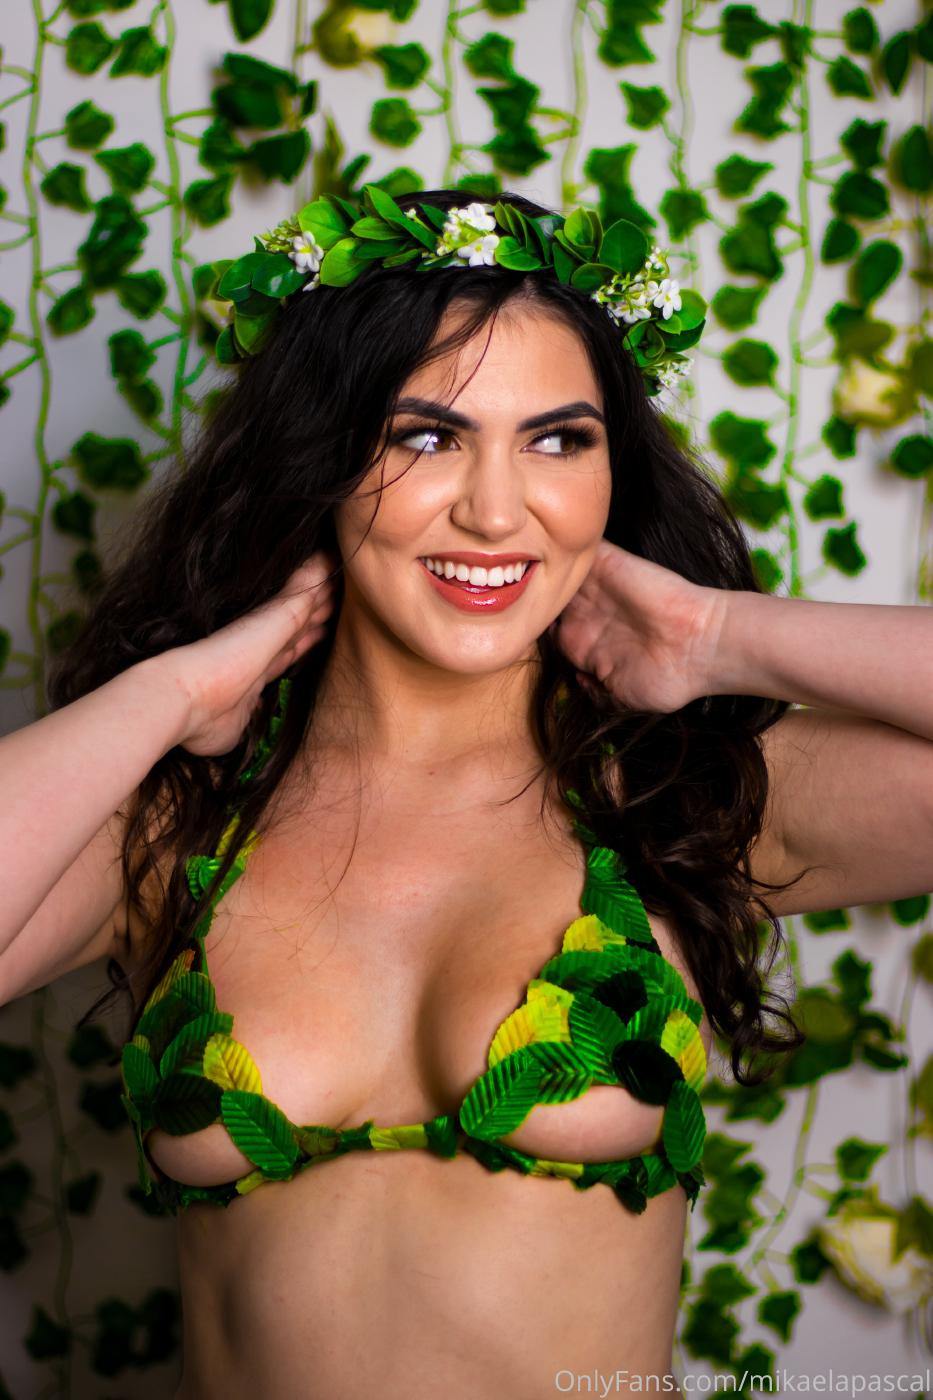 Mikaela Pascal May Extras Onlyfans Set Leaked Thtvyc